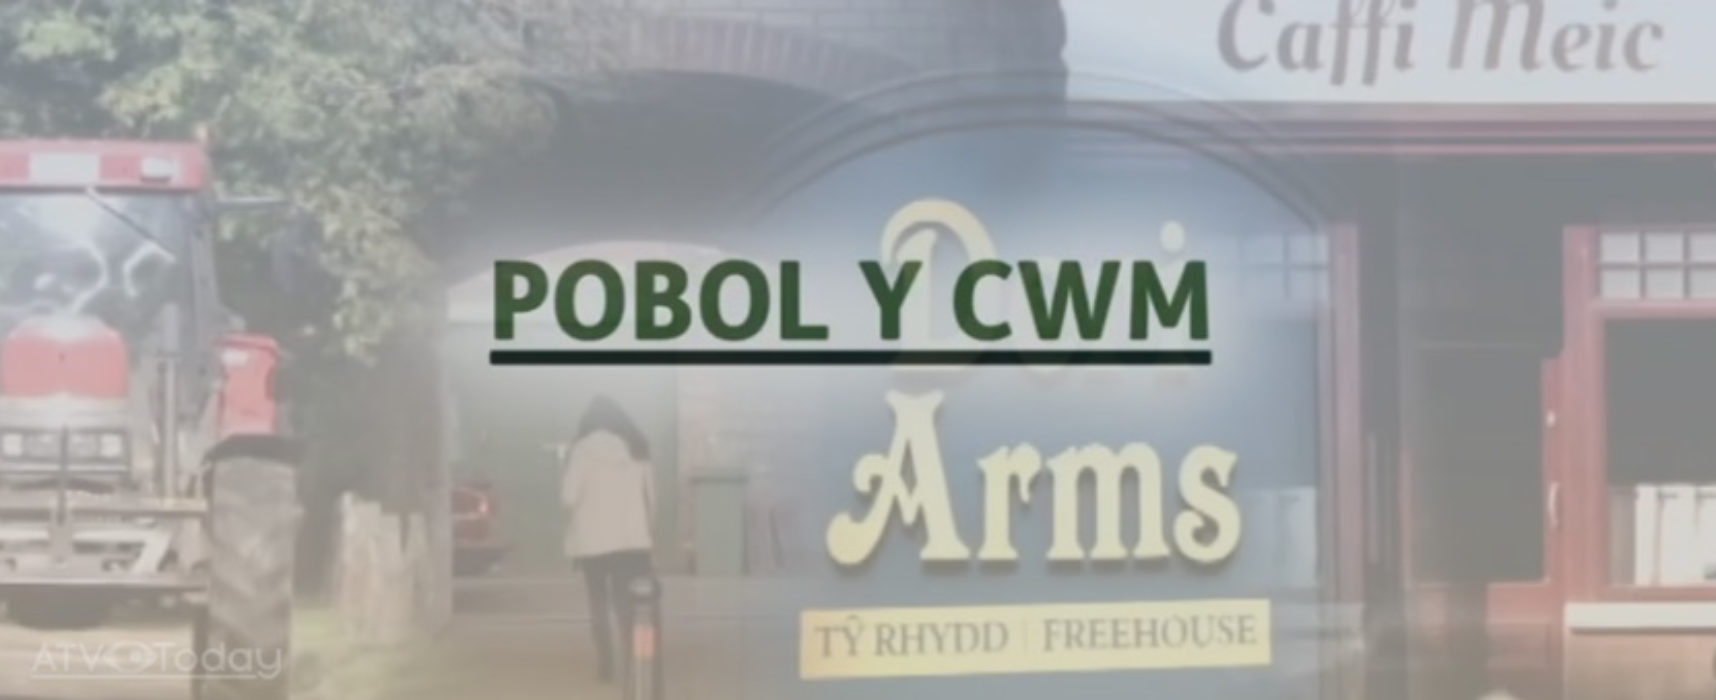 Pobol y Cwm launches set tours for National Eisteddfod